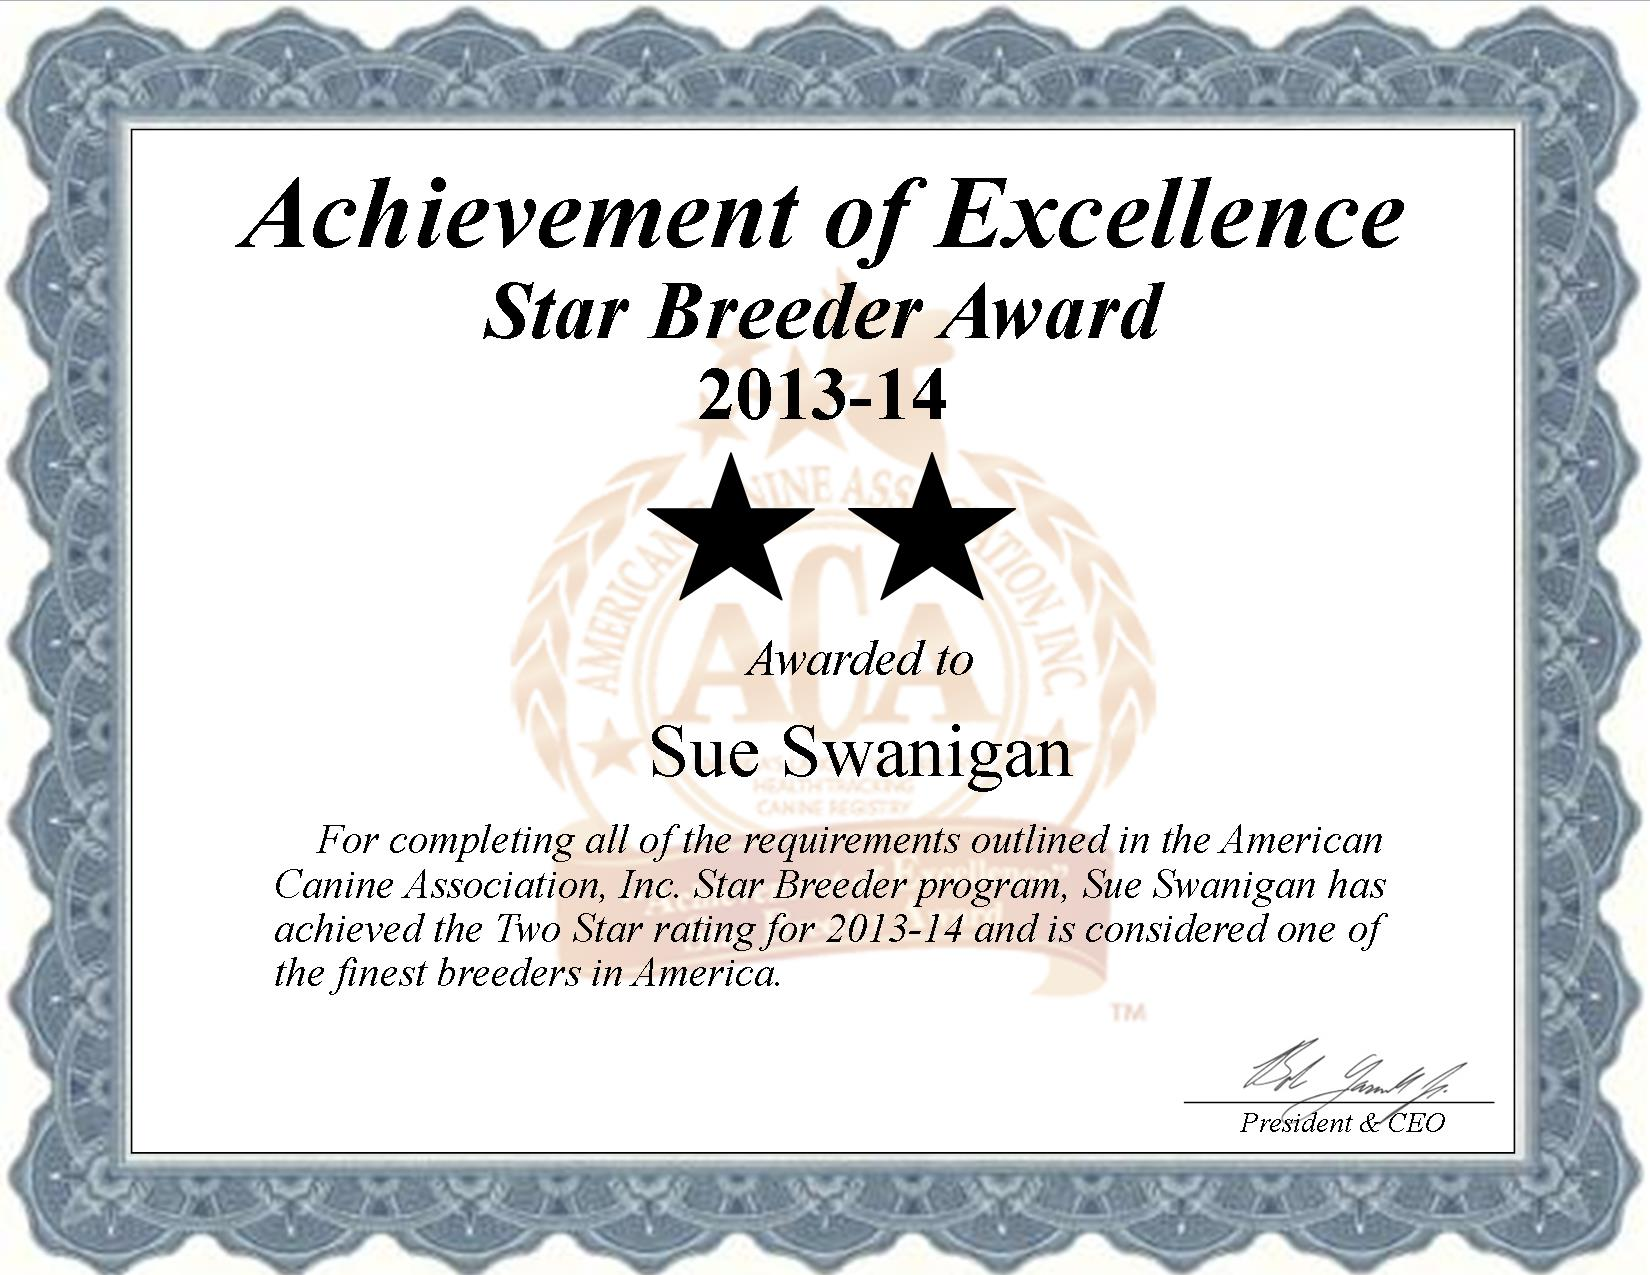 Sue, Swanigan, Sue Swanigan, Susan, Susan Swanigan, Swanigan Kennel, breeder, star breeder, aca, star breeder, 5 star, Buffalo, Missouri, MO, dog, puppy, puppies, dog breeder, dog breeders, Missouri breeder, Sue Swanigan dog breeder